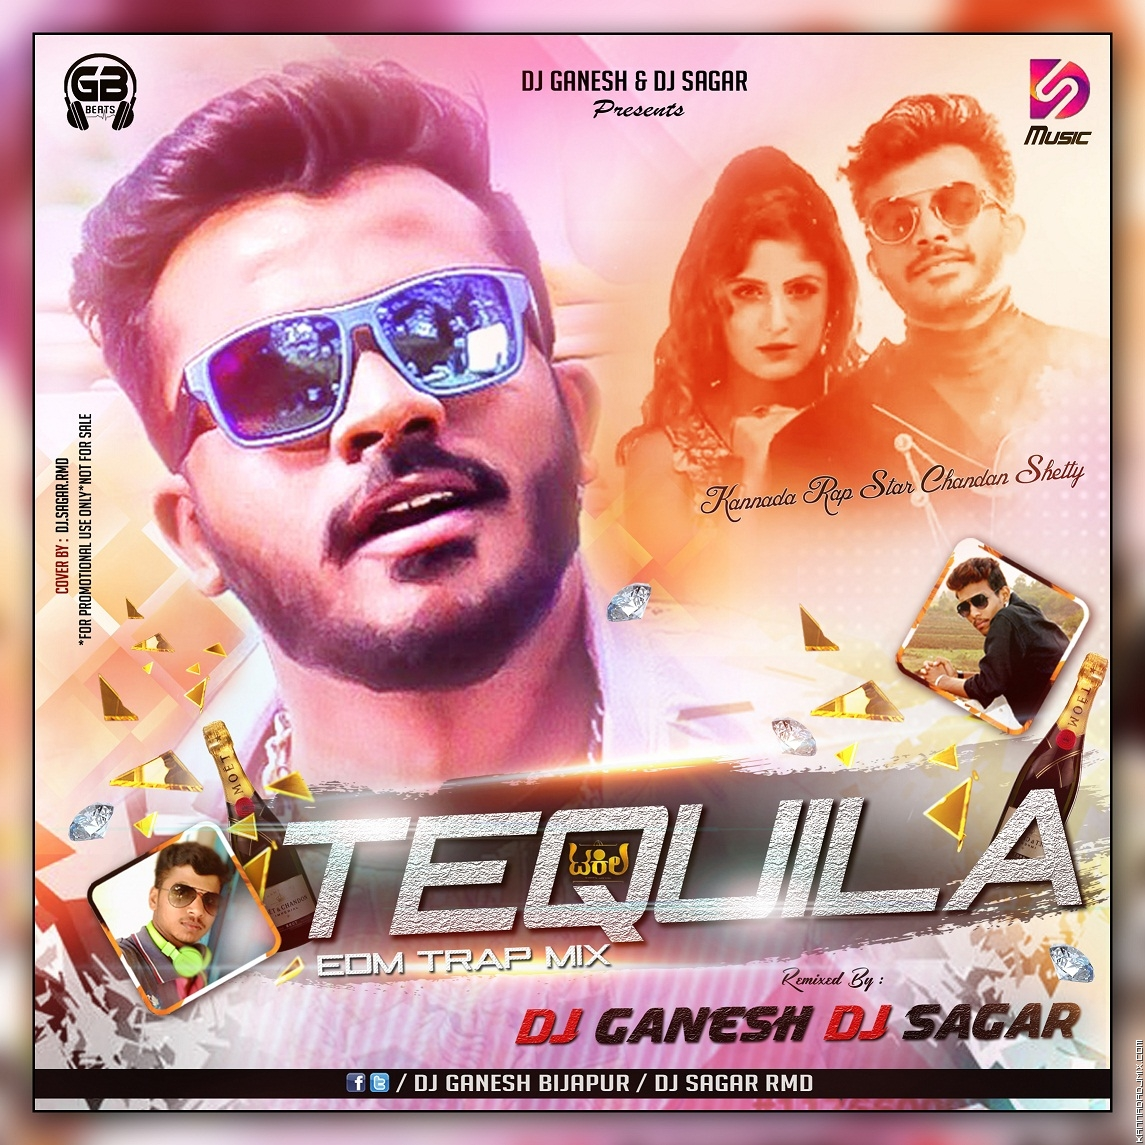 TEQUILA_- KANNADA_RAPPER_CHANDAN_SHETTY_ EDM TRAP MIX DJ GANESH [BIJAPUR] AND  DJ SAGAR RMD.mp3